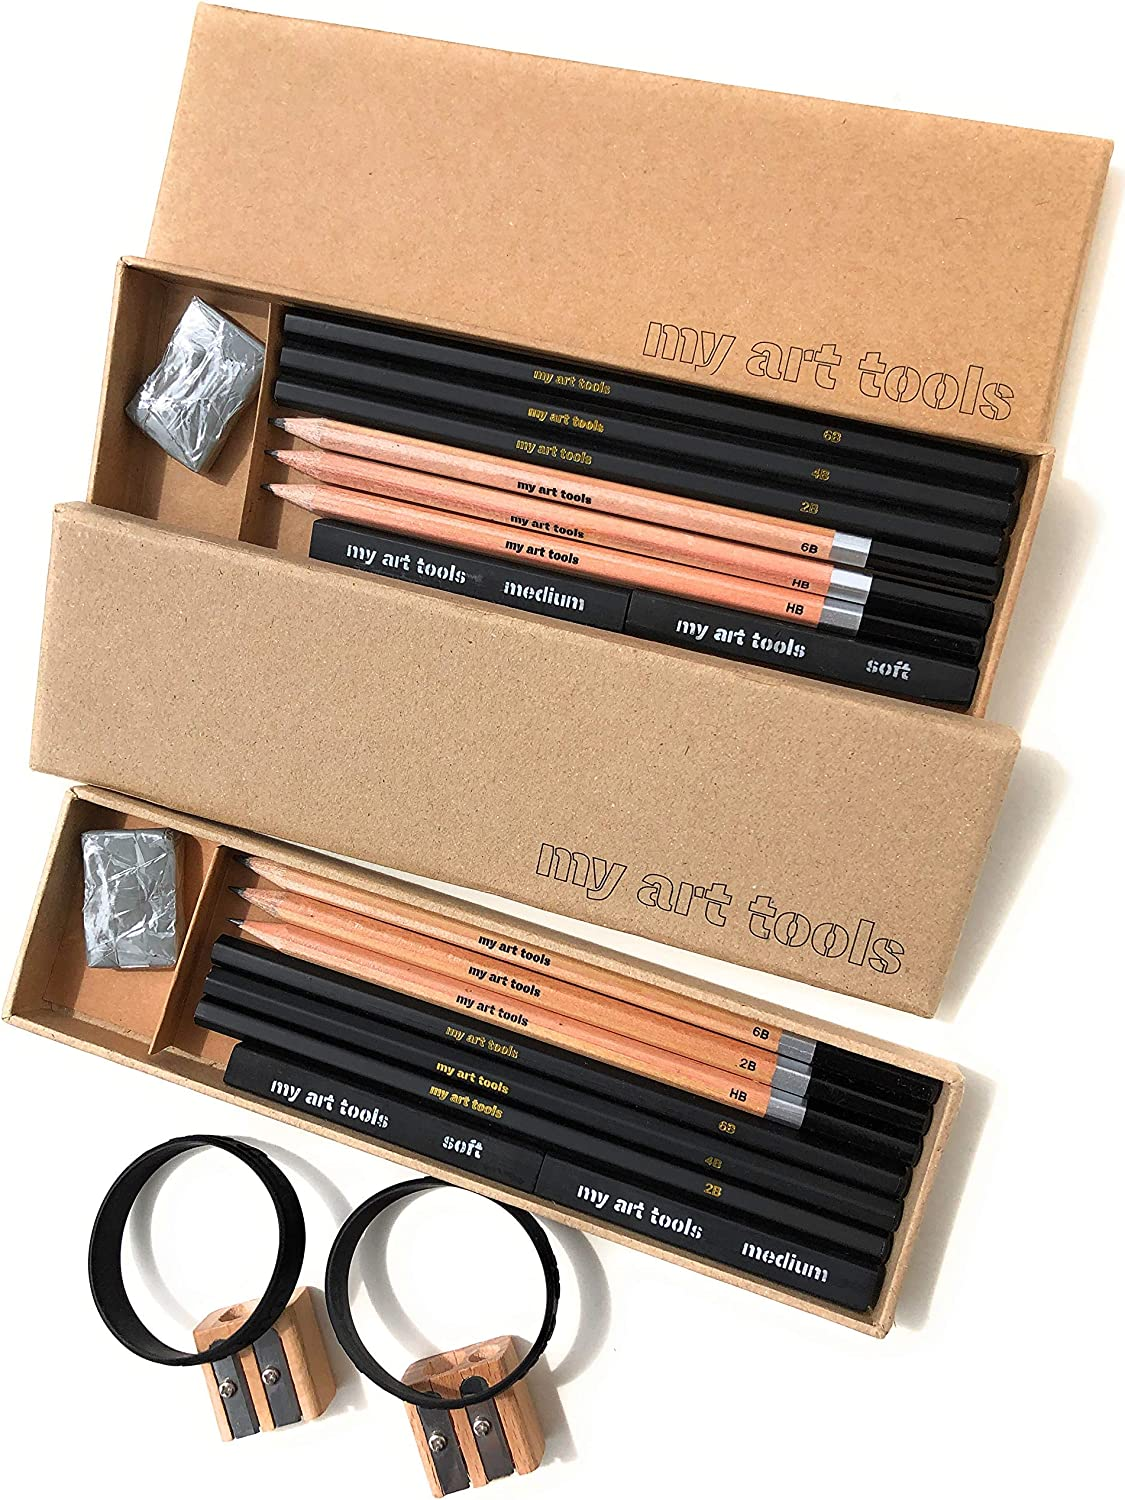 MY ART TOOLS Pencils Sets for drawing and sketching, 10 Pieces EACH kit-Perfect for any aspiring artist-Include Graphite and Charcoal pencils, Compressed Sticks and Sharpener, in 2 non plastic boxes : Office Products